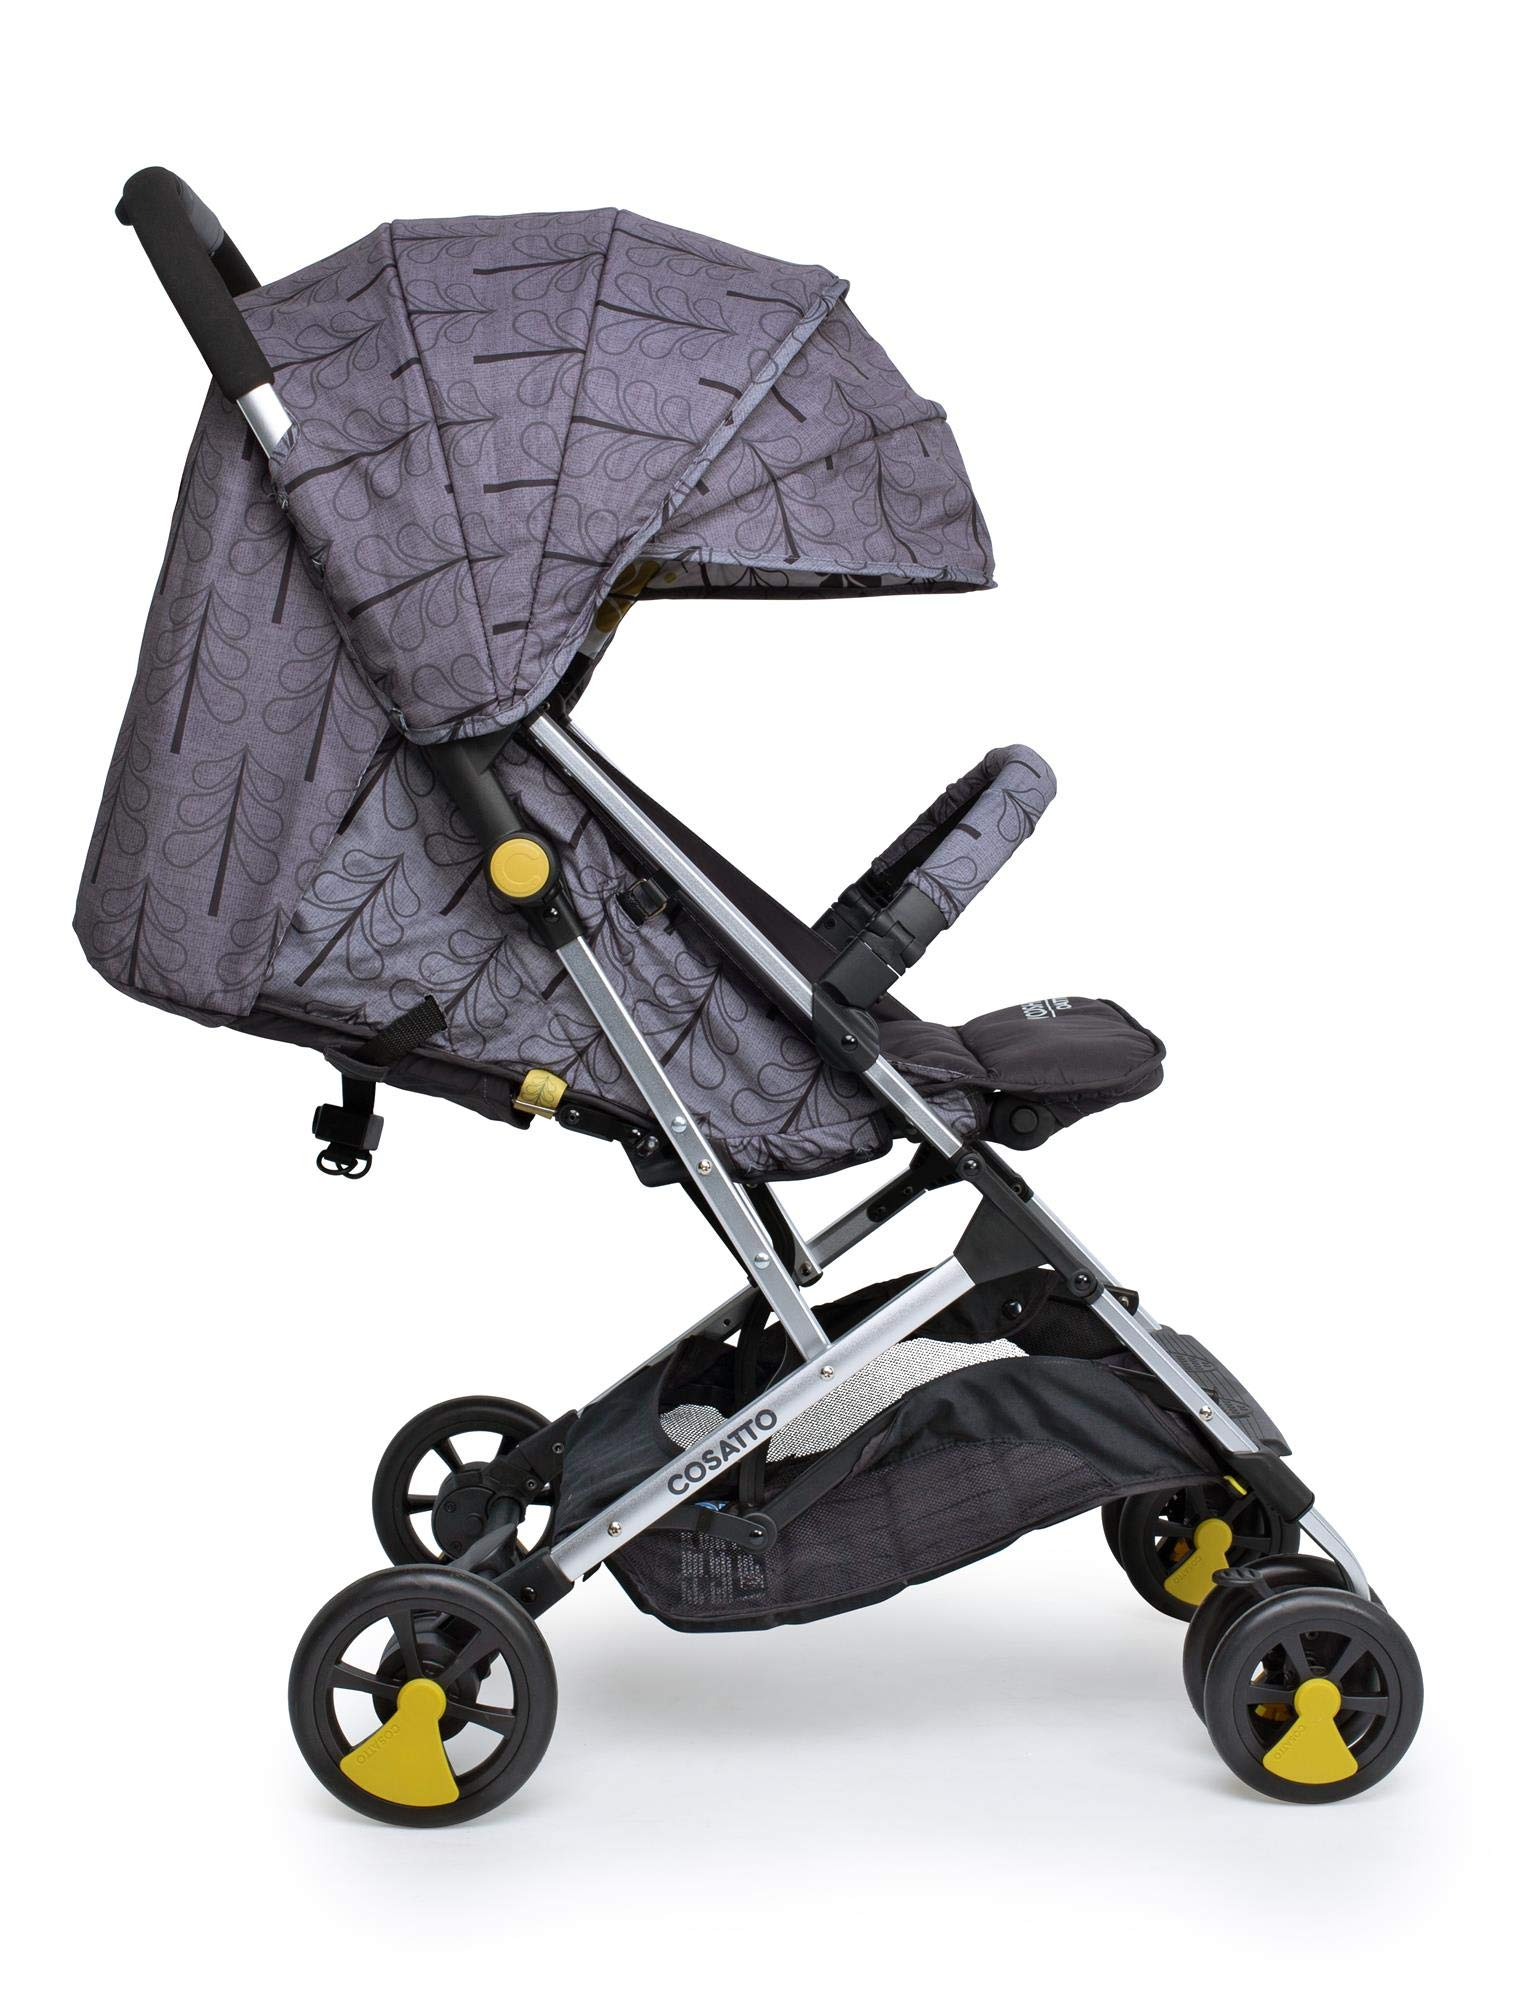 Cosatto Woosh 2 Stroller Fika Forest with raincover and Bumper bar Birth to 25kg Cosatto INCLUDES: The pushchair itself, Raincover, Bumper bar,4 year guarantee(UK and Ireland only) Suitable from birth to max weight of 25kg. Lets your toddler use it for even longer. Lightweight, sturdy aluminium frame. Newborn recline. Lightweight waterproof Ripstop fabric on seat. Lockable swivel front wheels for quick manoeuvres Roomy seat for extra comfort. Removable bumper bar for extra support. Magic bell. Front & rear suspension for a smooth ride. 1